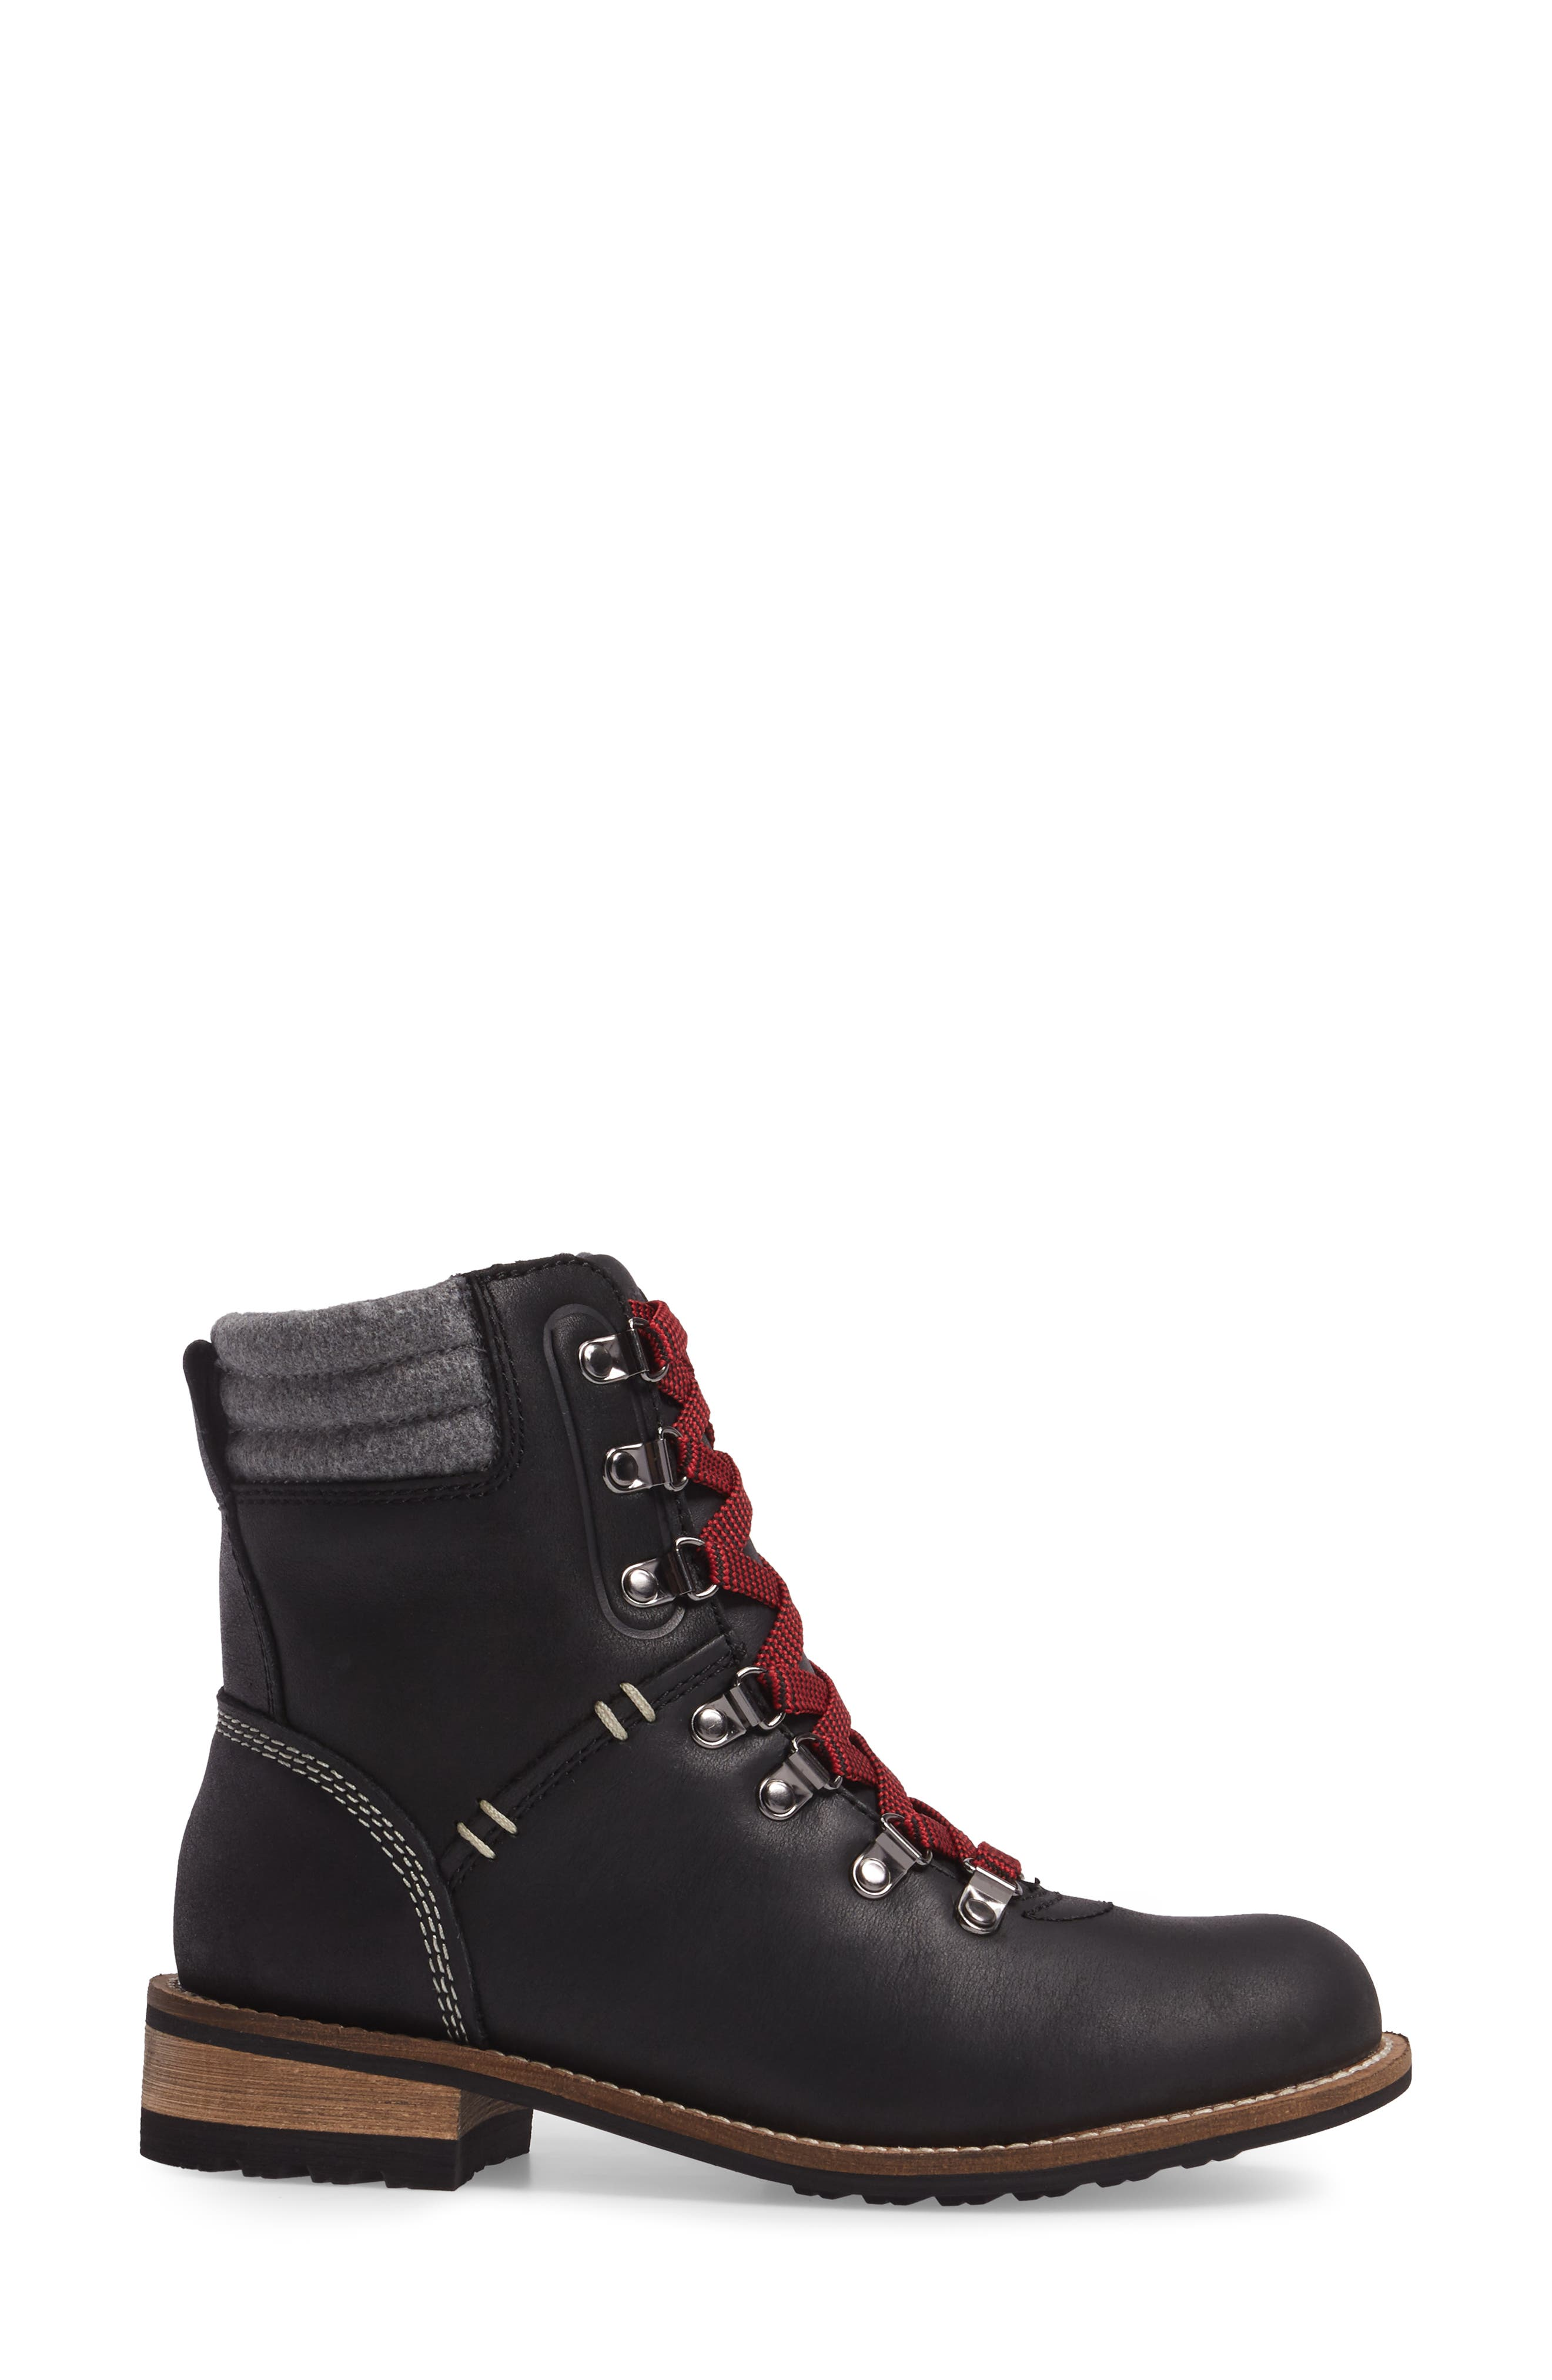 Surrey II Waterproof Boot,                             Alternate thumbnail 3, color,                             BLACK LEATHER